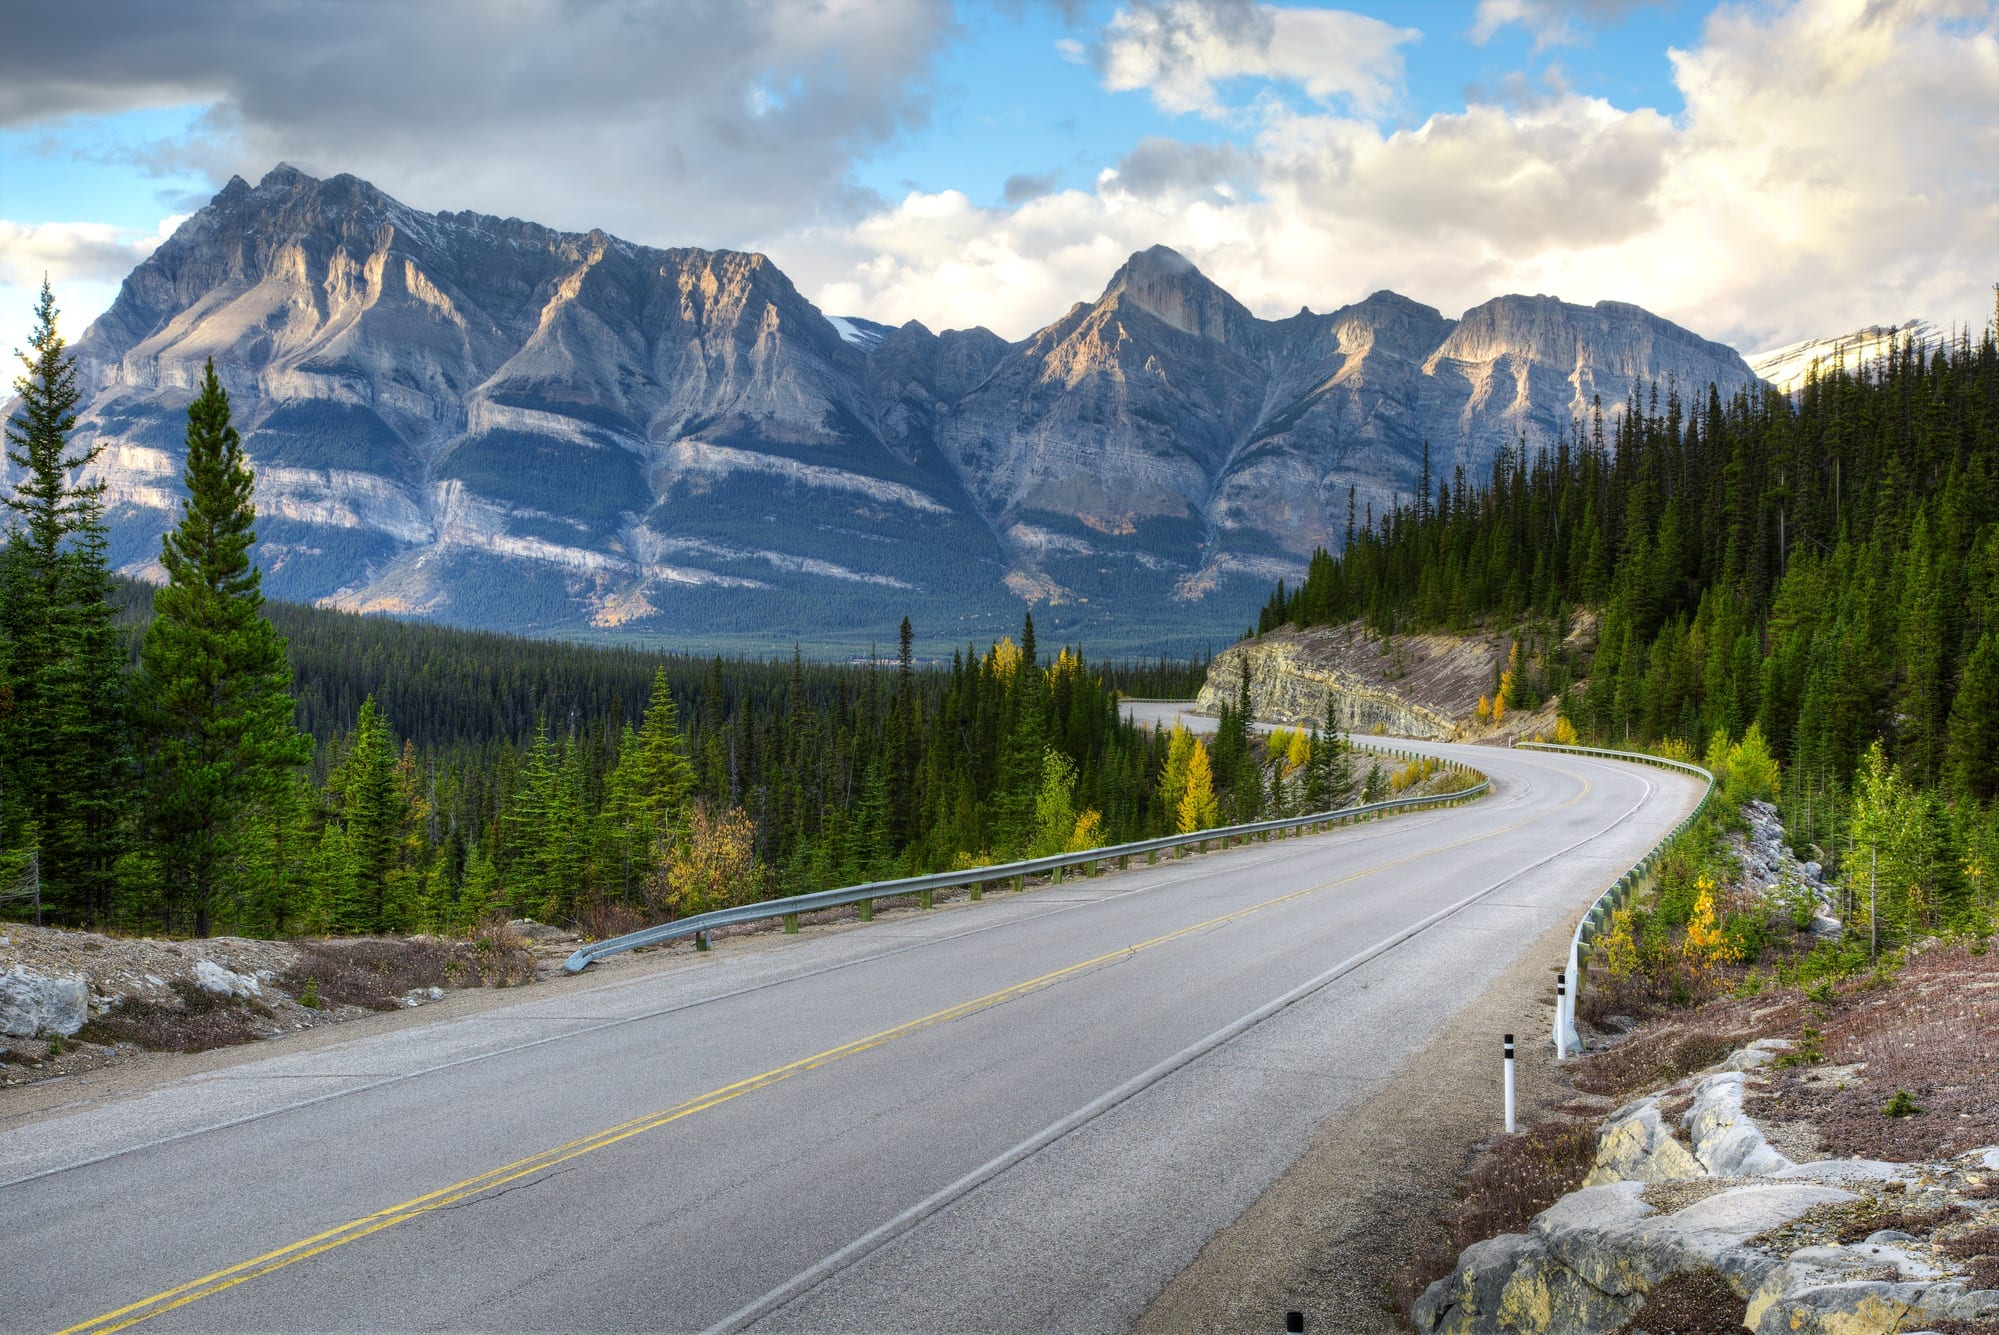 Exploring Banff by bus or car is a relaxing option for families